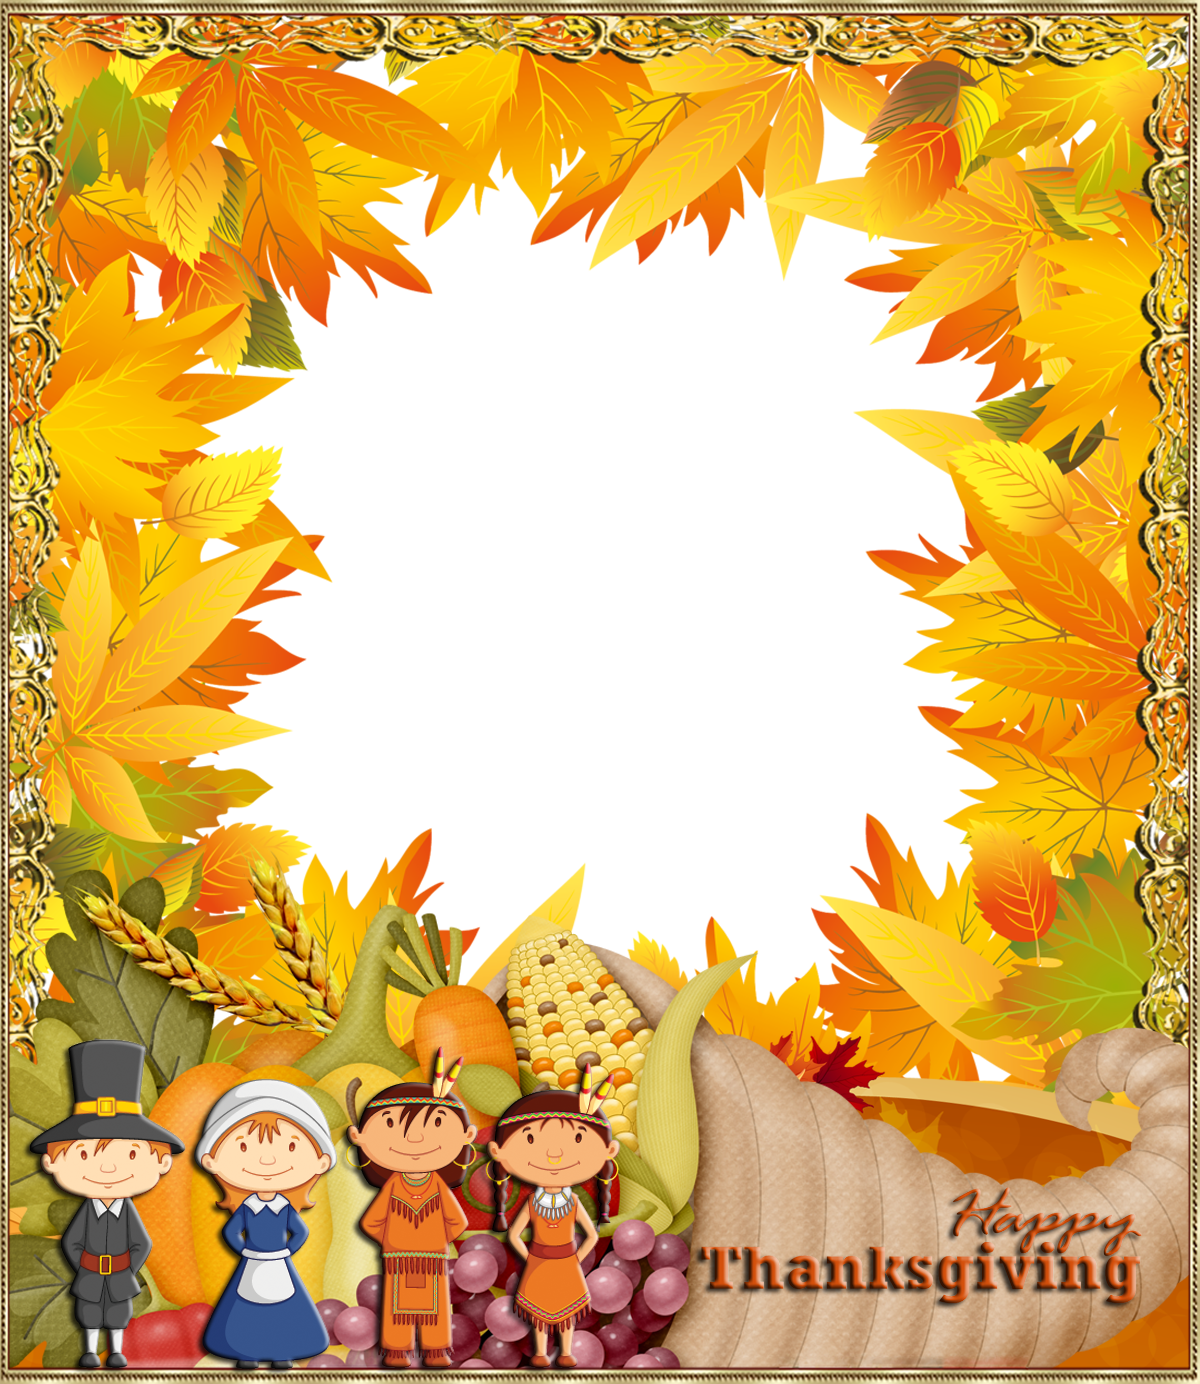 Happy png photo frame. Clipart frames thanksgiving